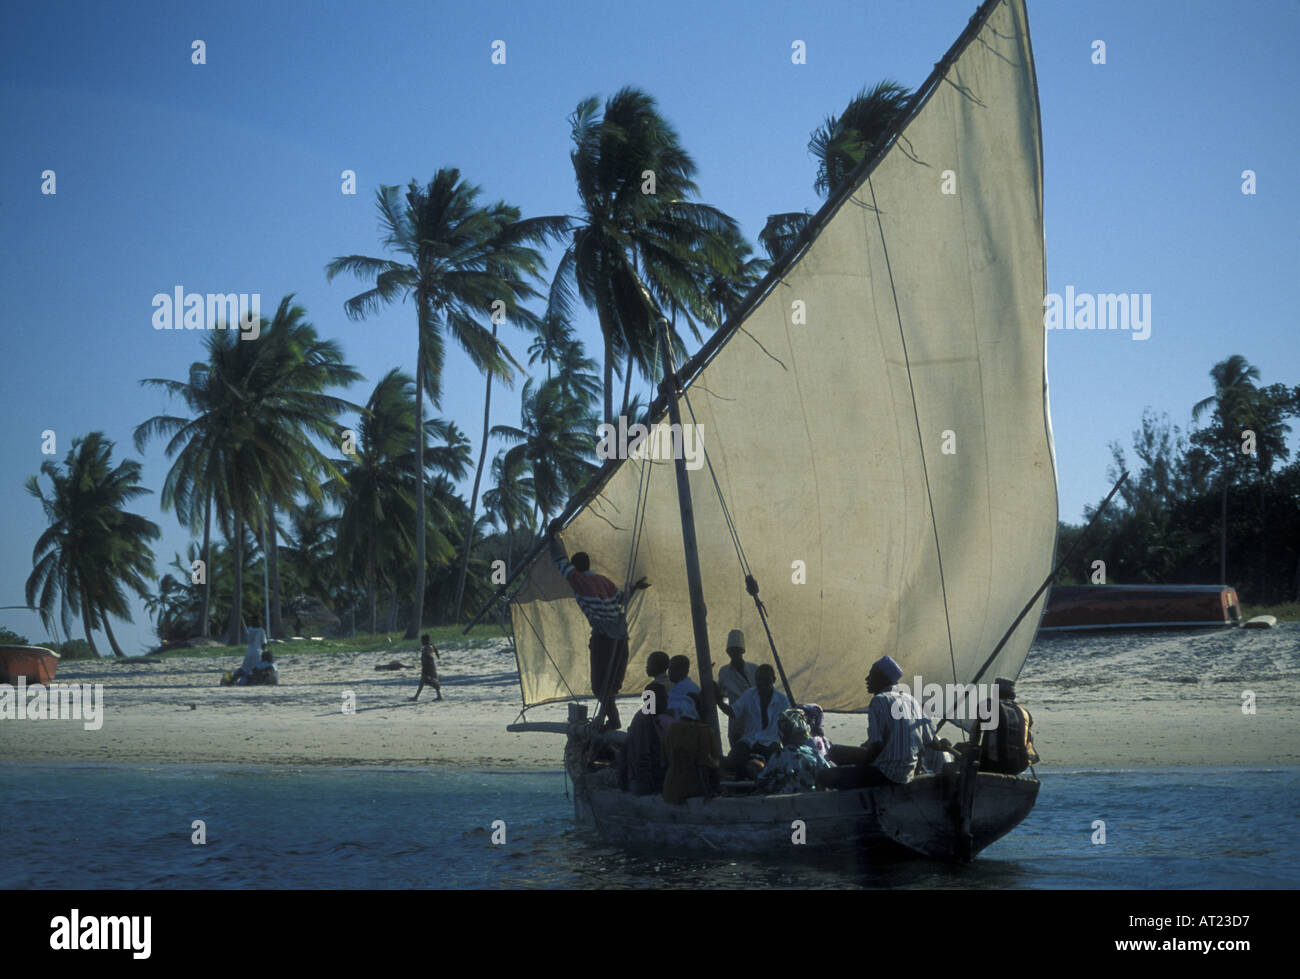 Mafia Island the Chole taxi boat ferries passengers across to other islands - Stock Image